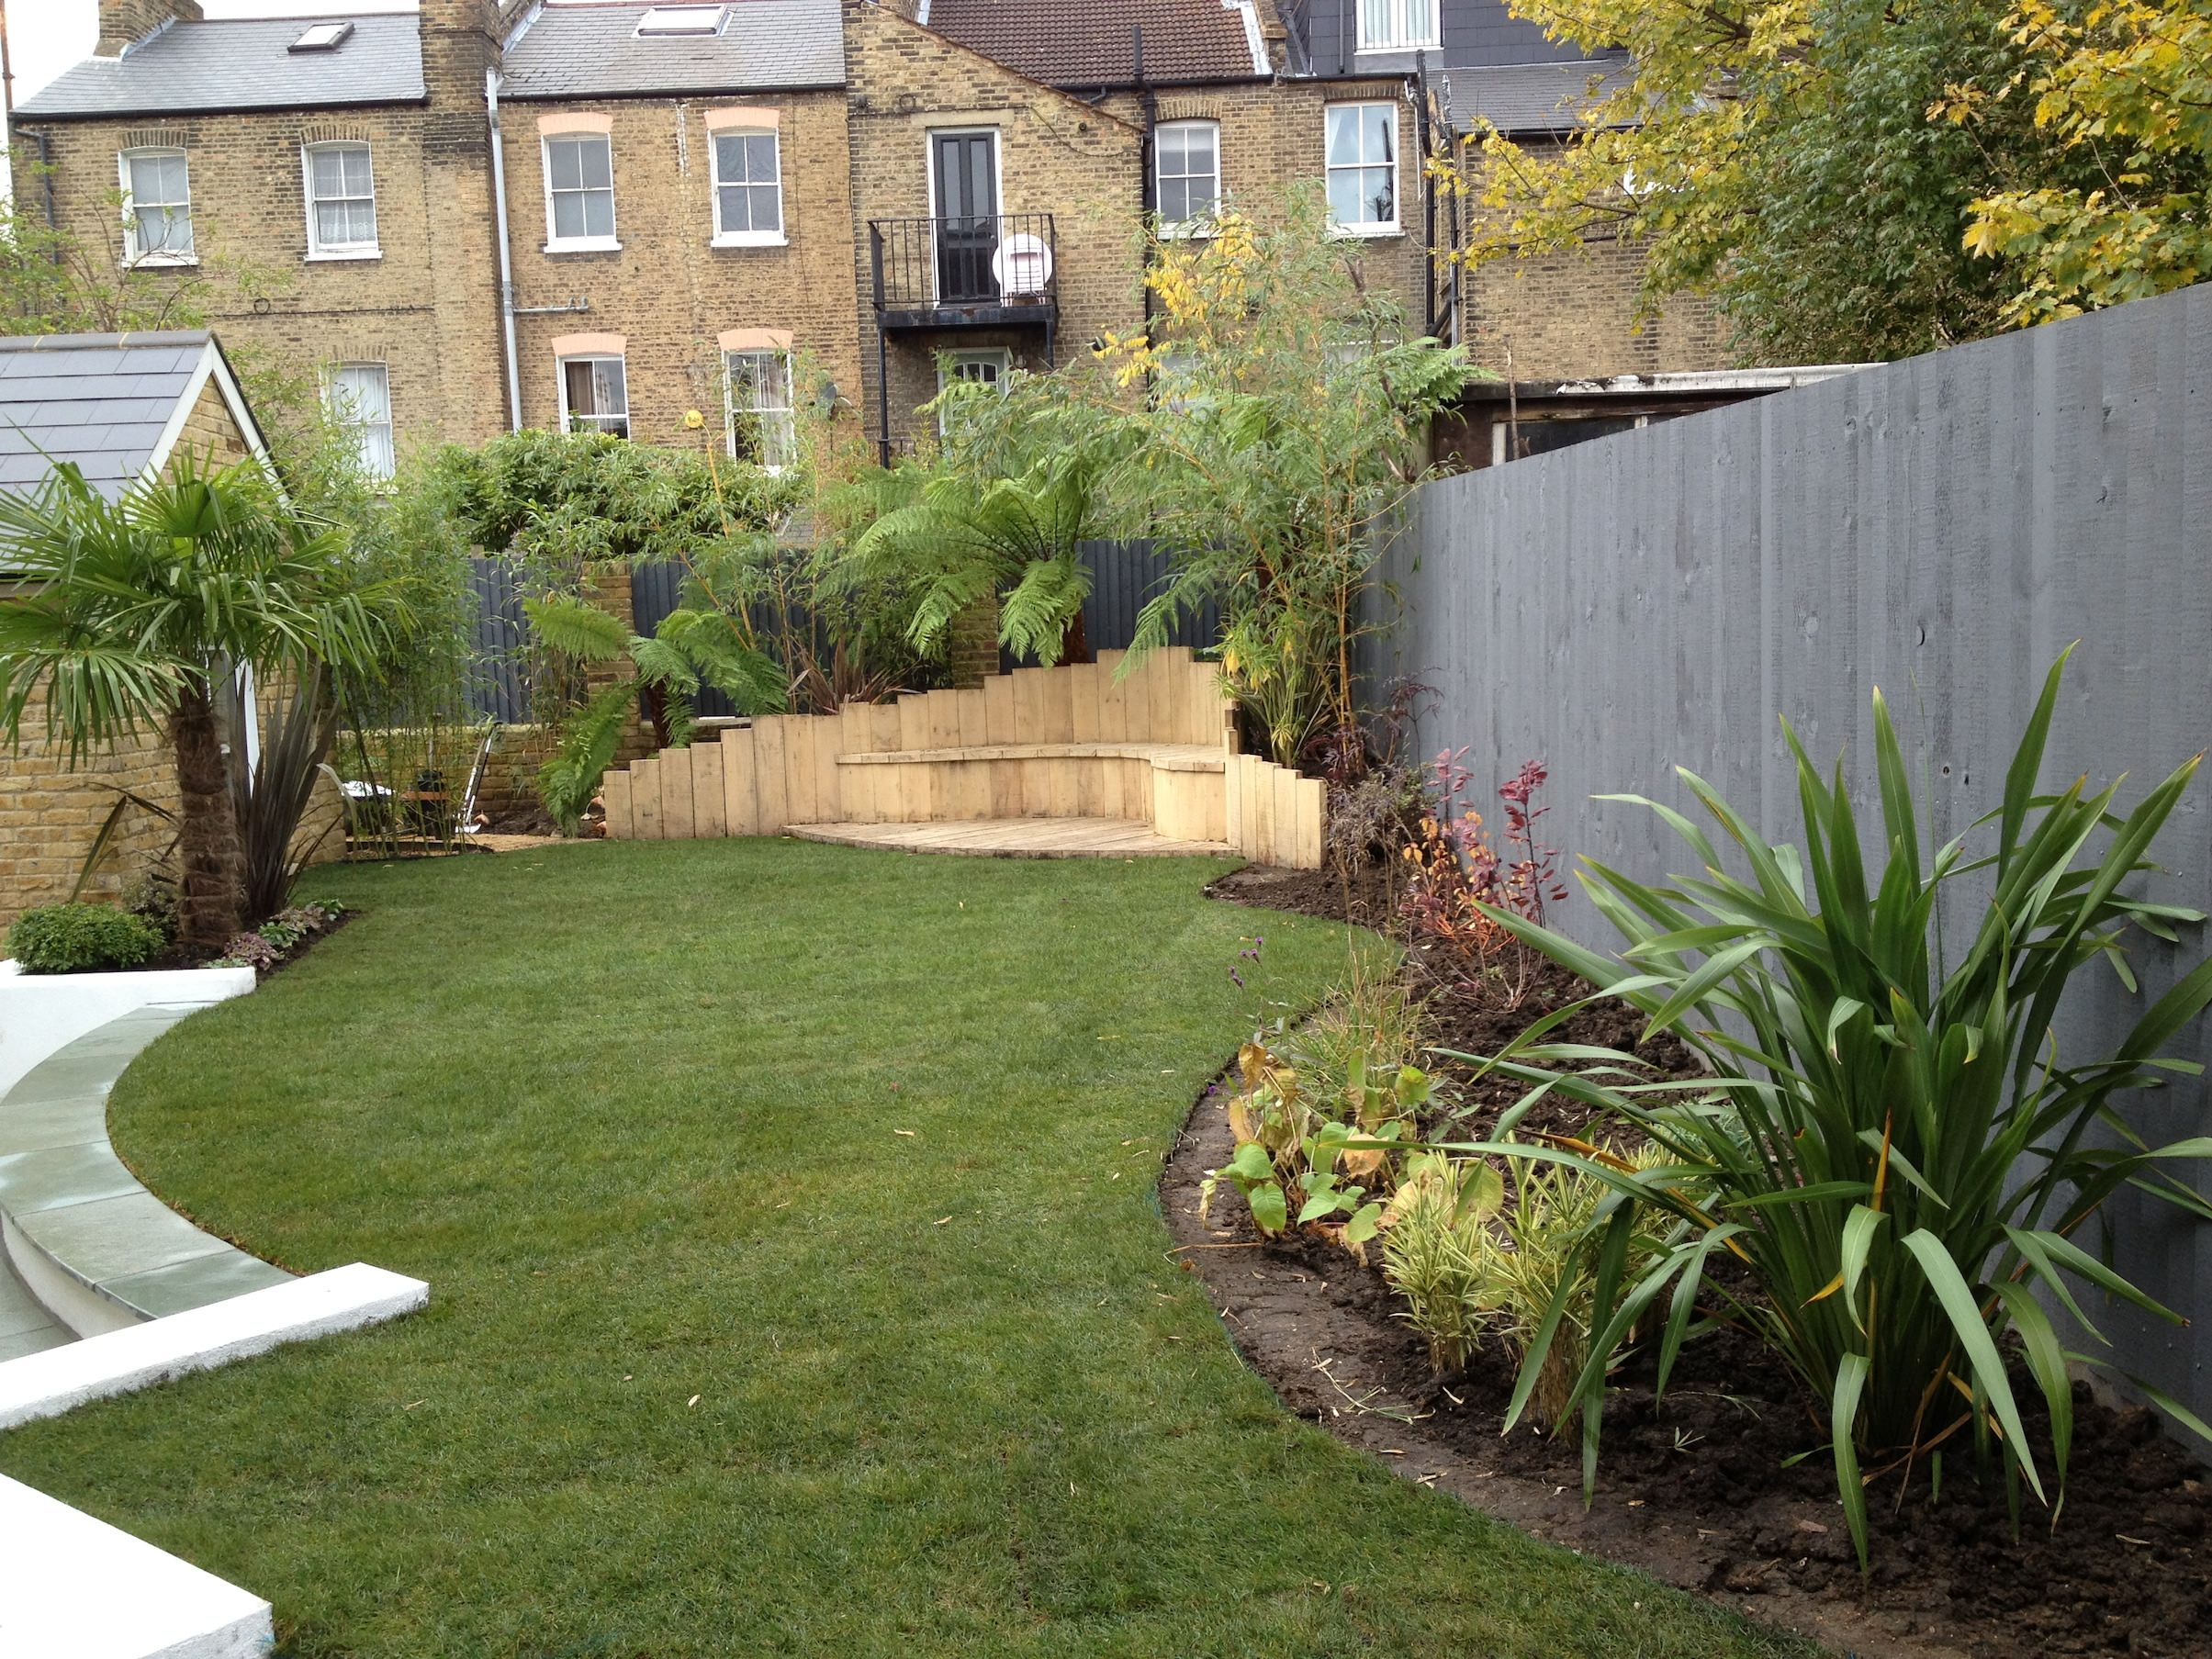 Low maintenance garden designs garden club london Low maintenance garden border ideas